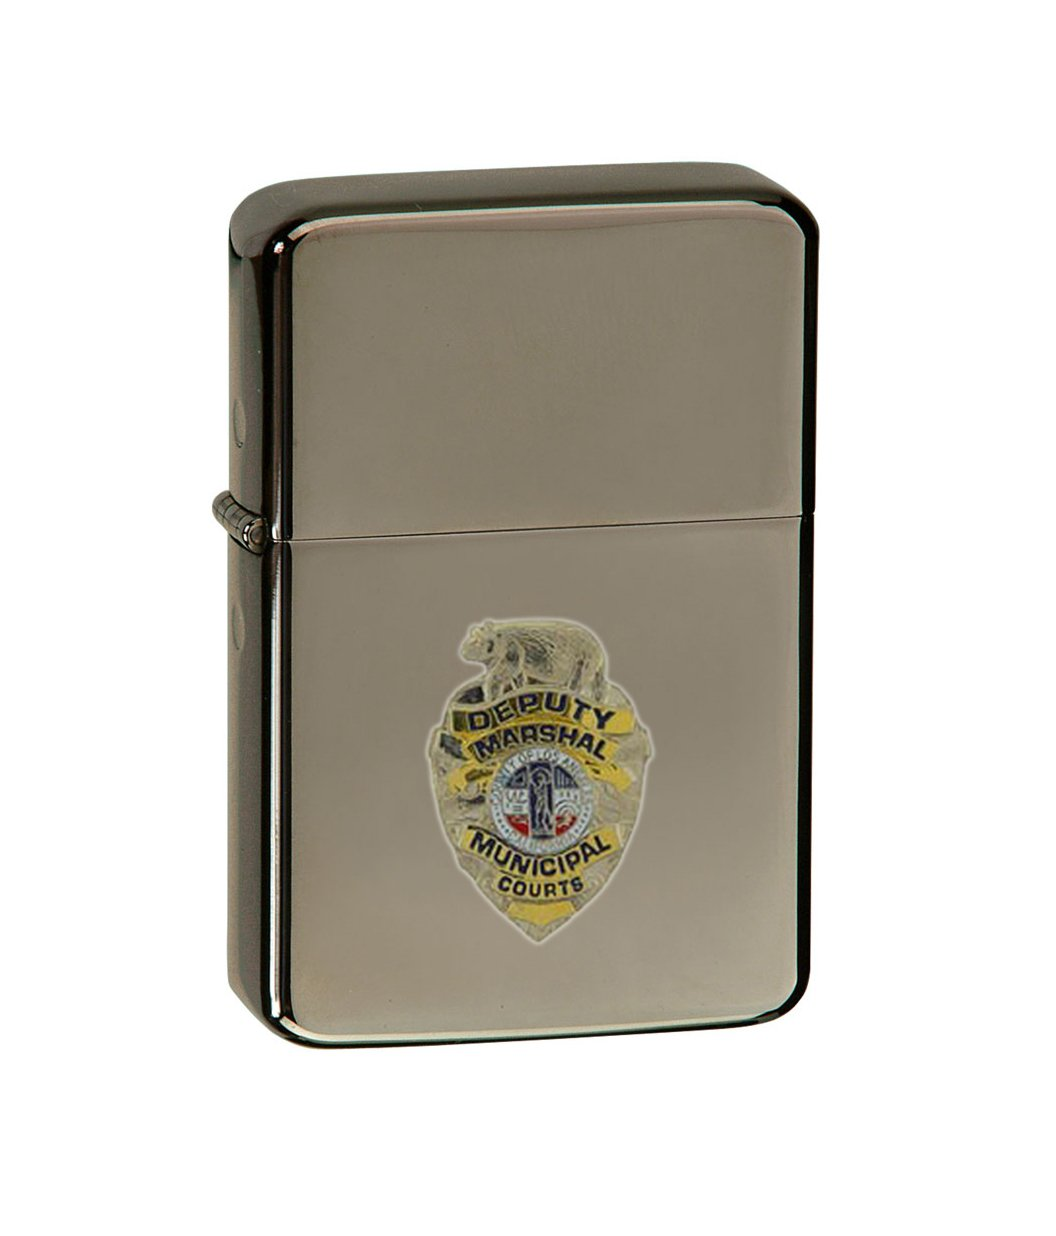 Vector KGM Thunderbird Emblem Sparkle Black Lighter - Law Enforcement Pin Collector Series - Police Badge Pins - Los Angeles, CA Deputy Marshall vector hx300